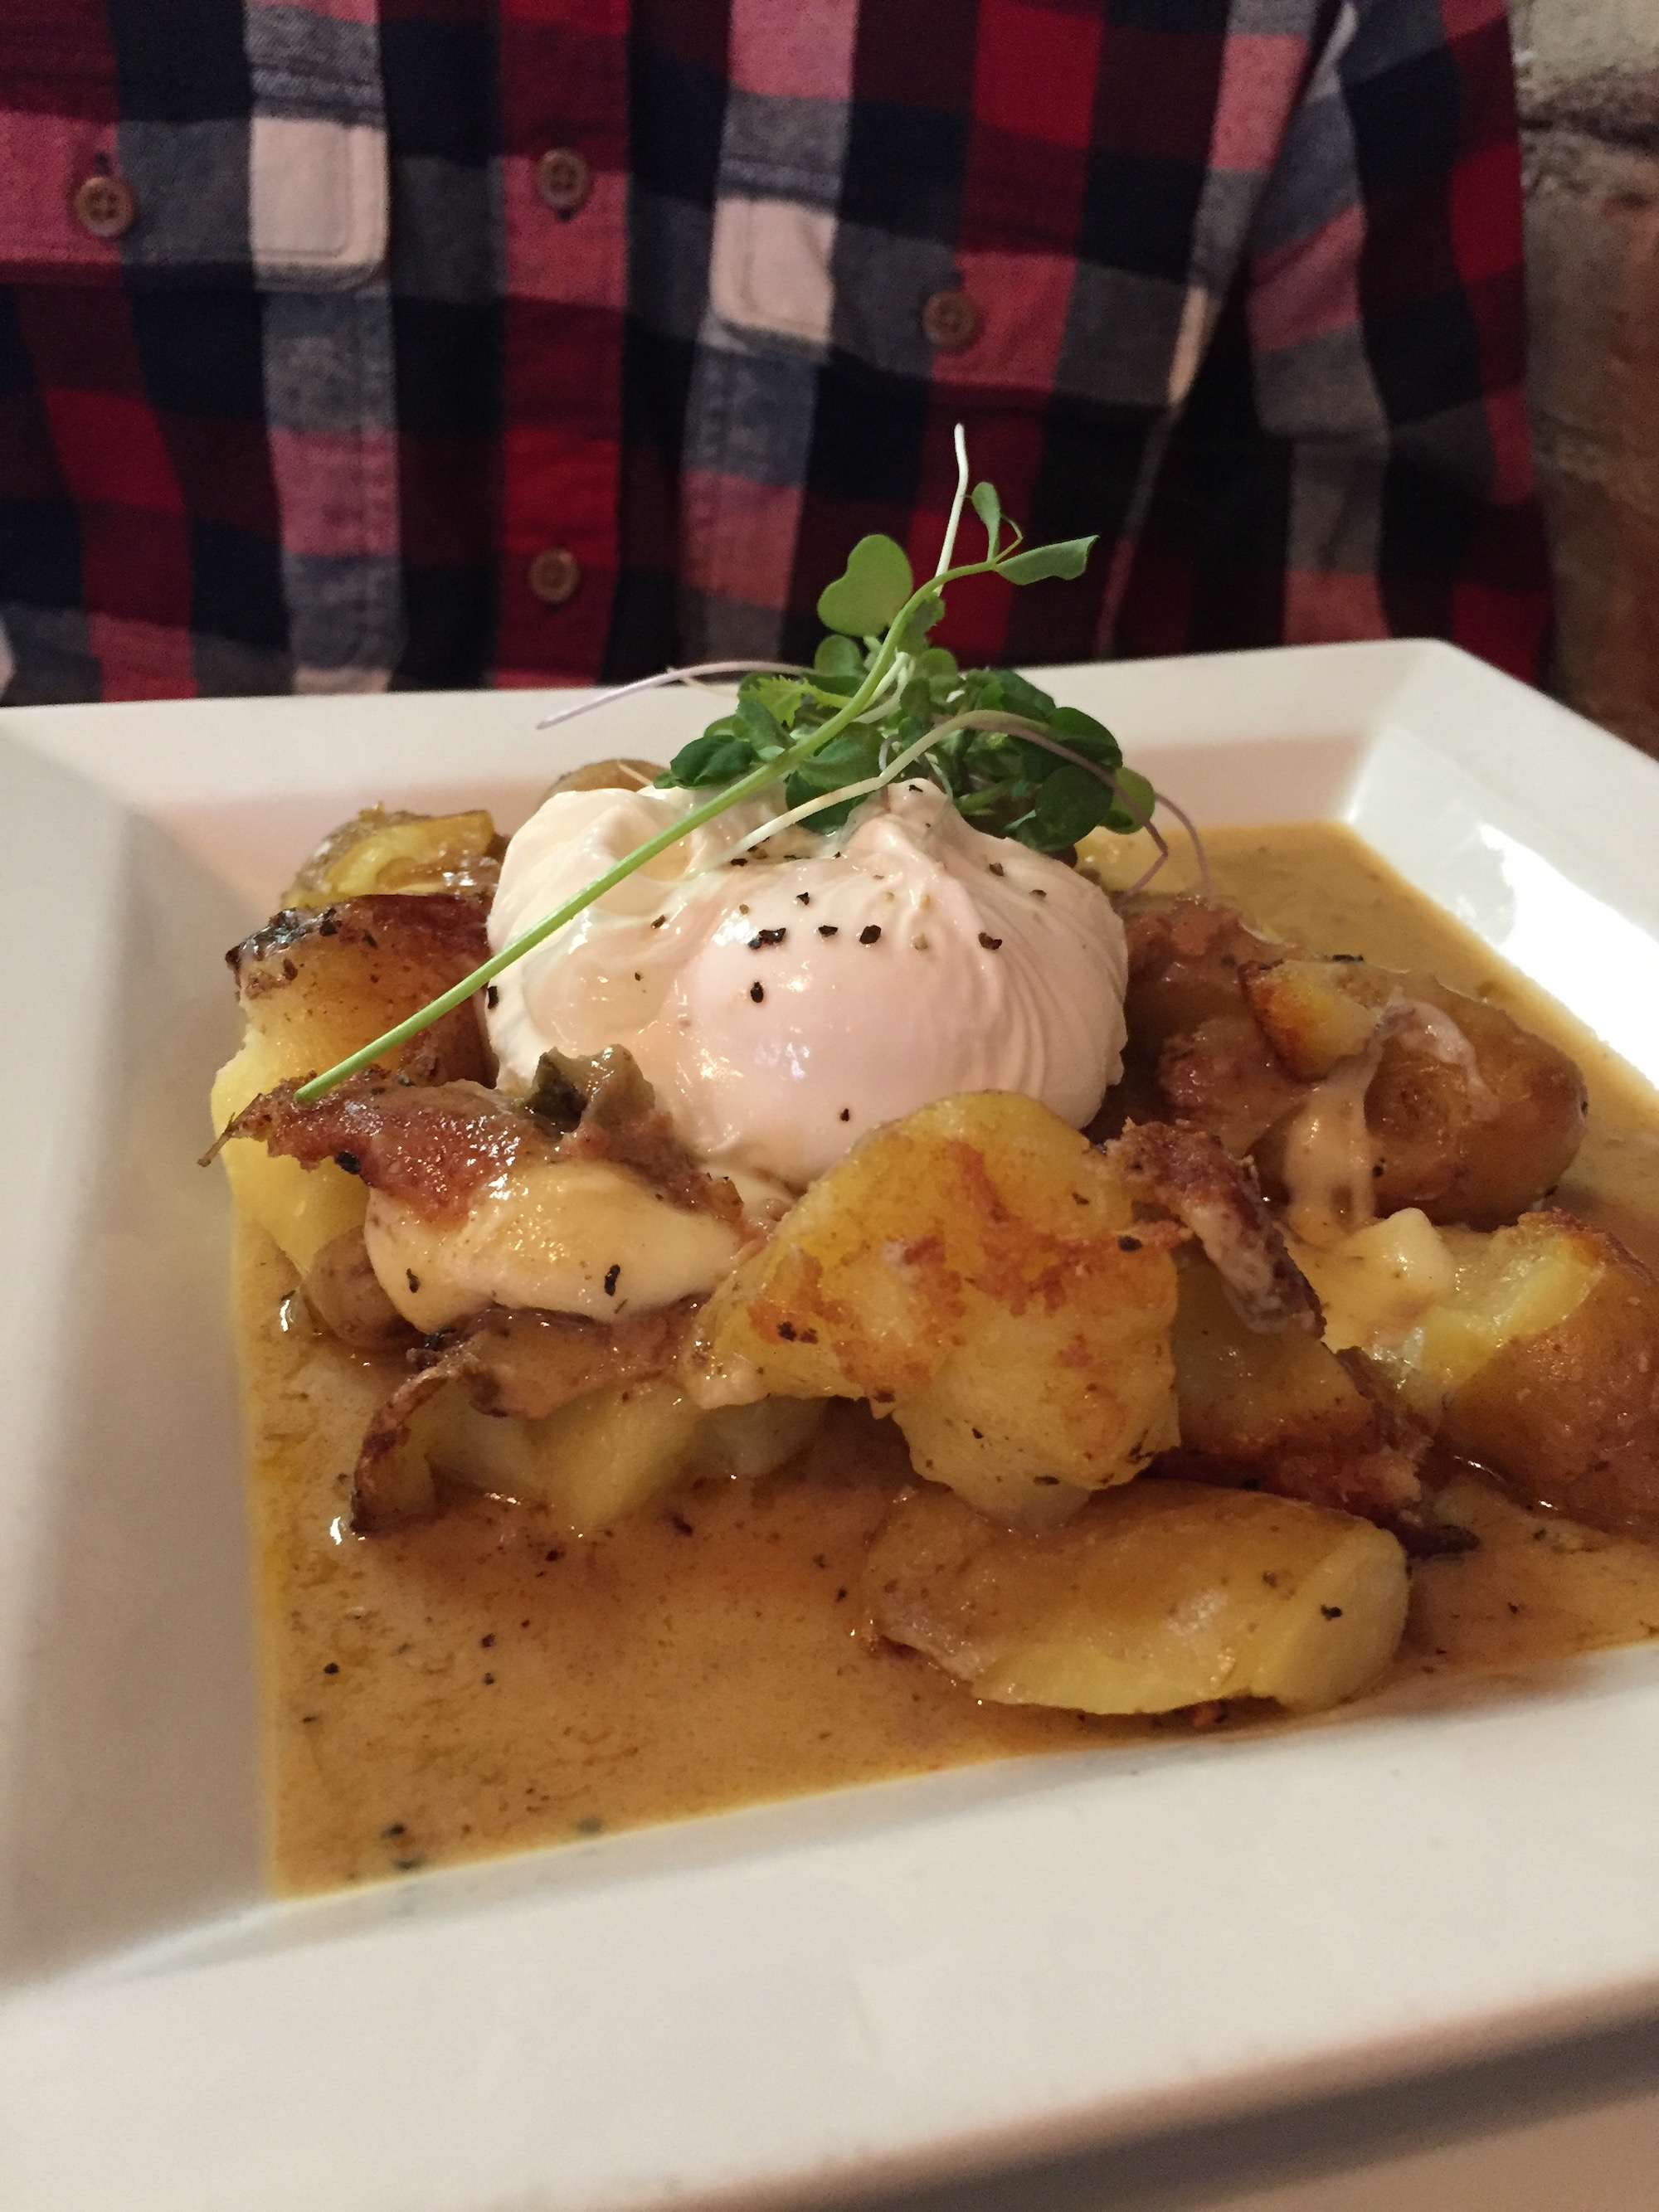 Poached egg with sausage over potatoes